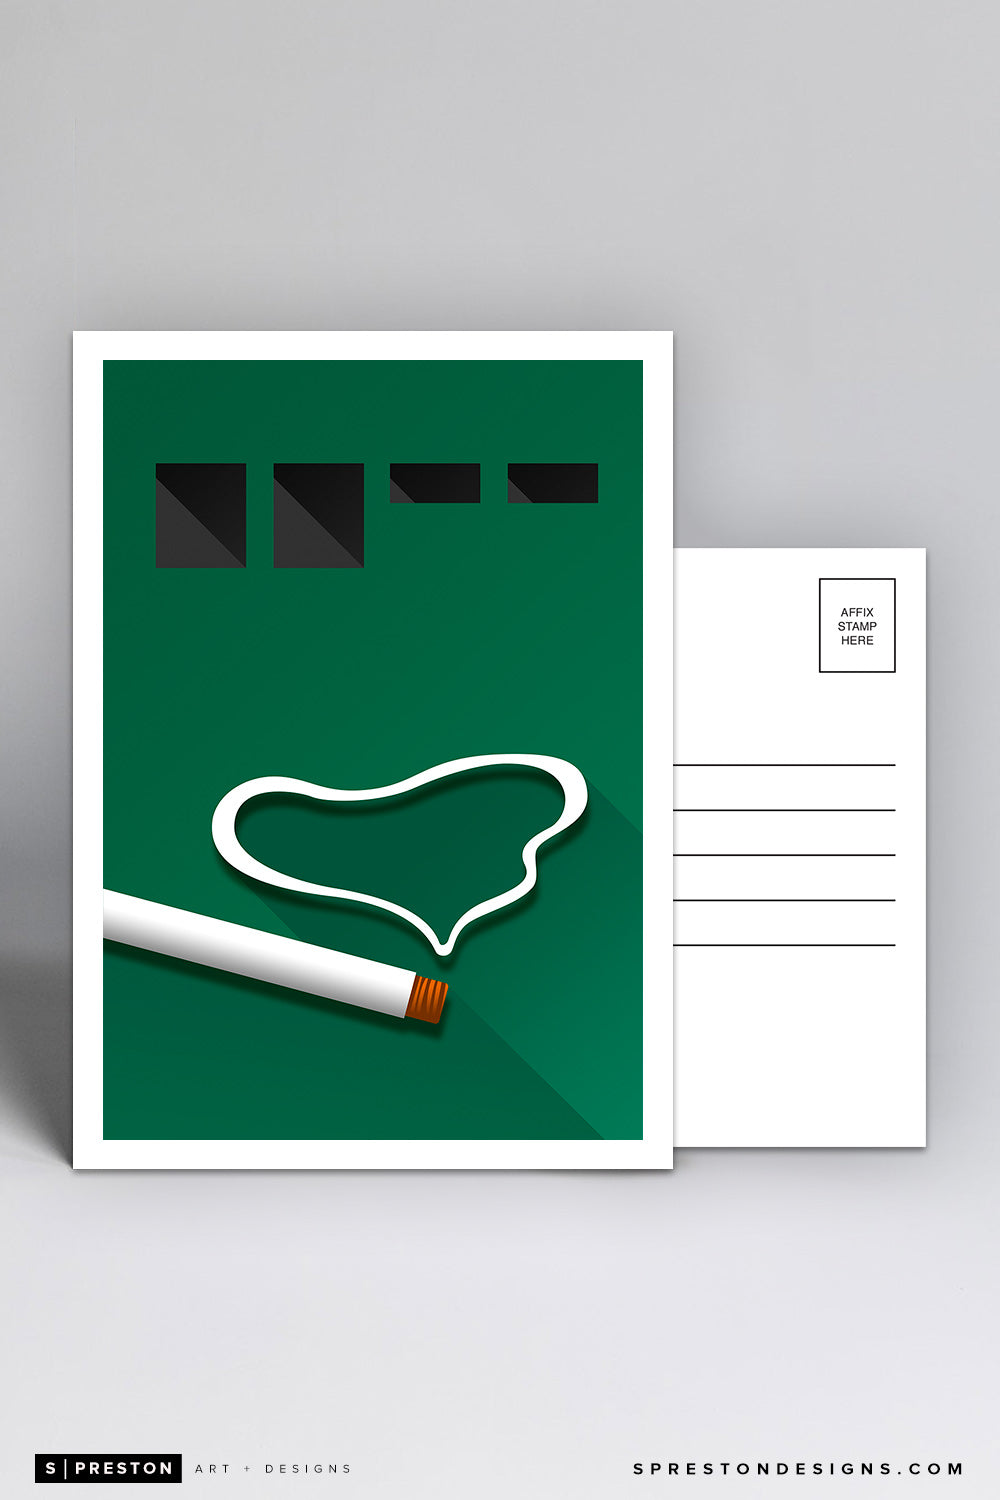 Minimalist Polo Ground Postcard